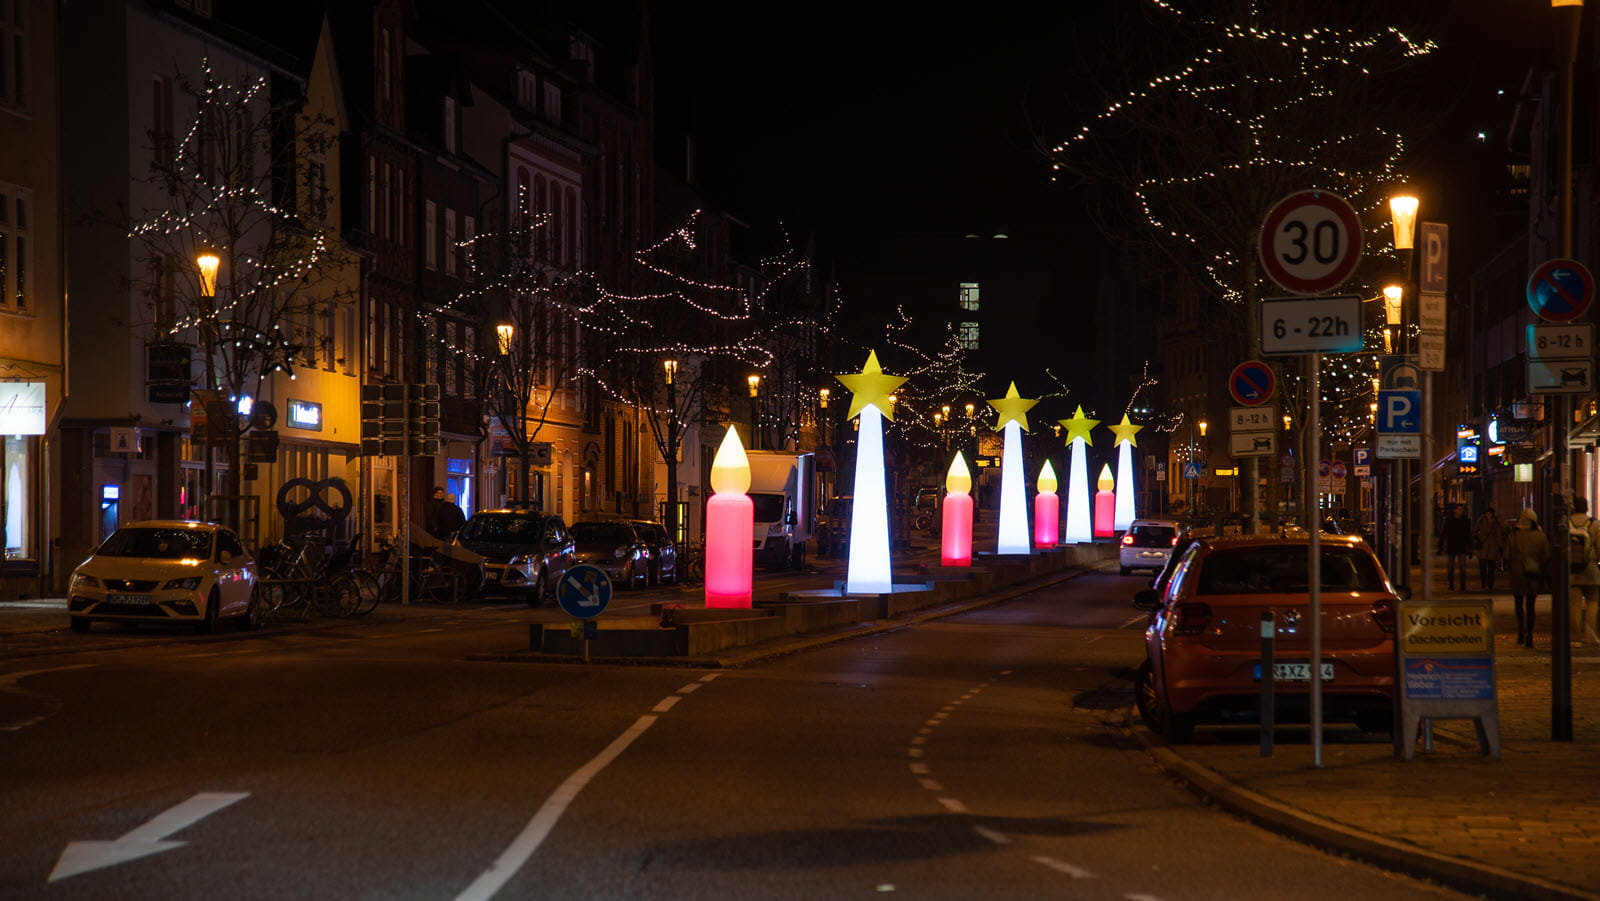 large candles light up a Marburg street